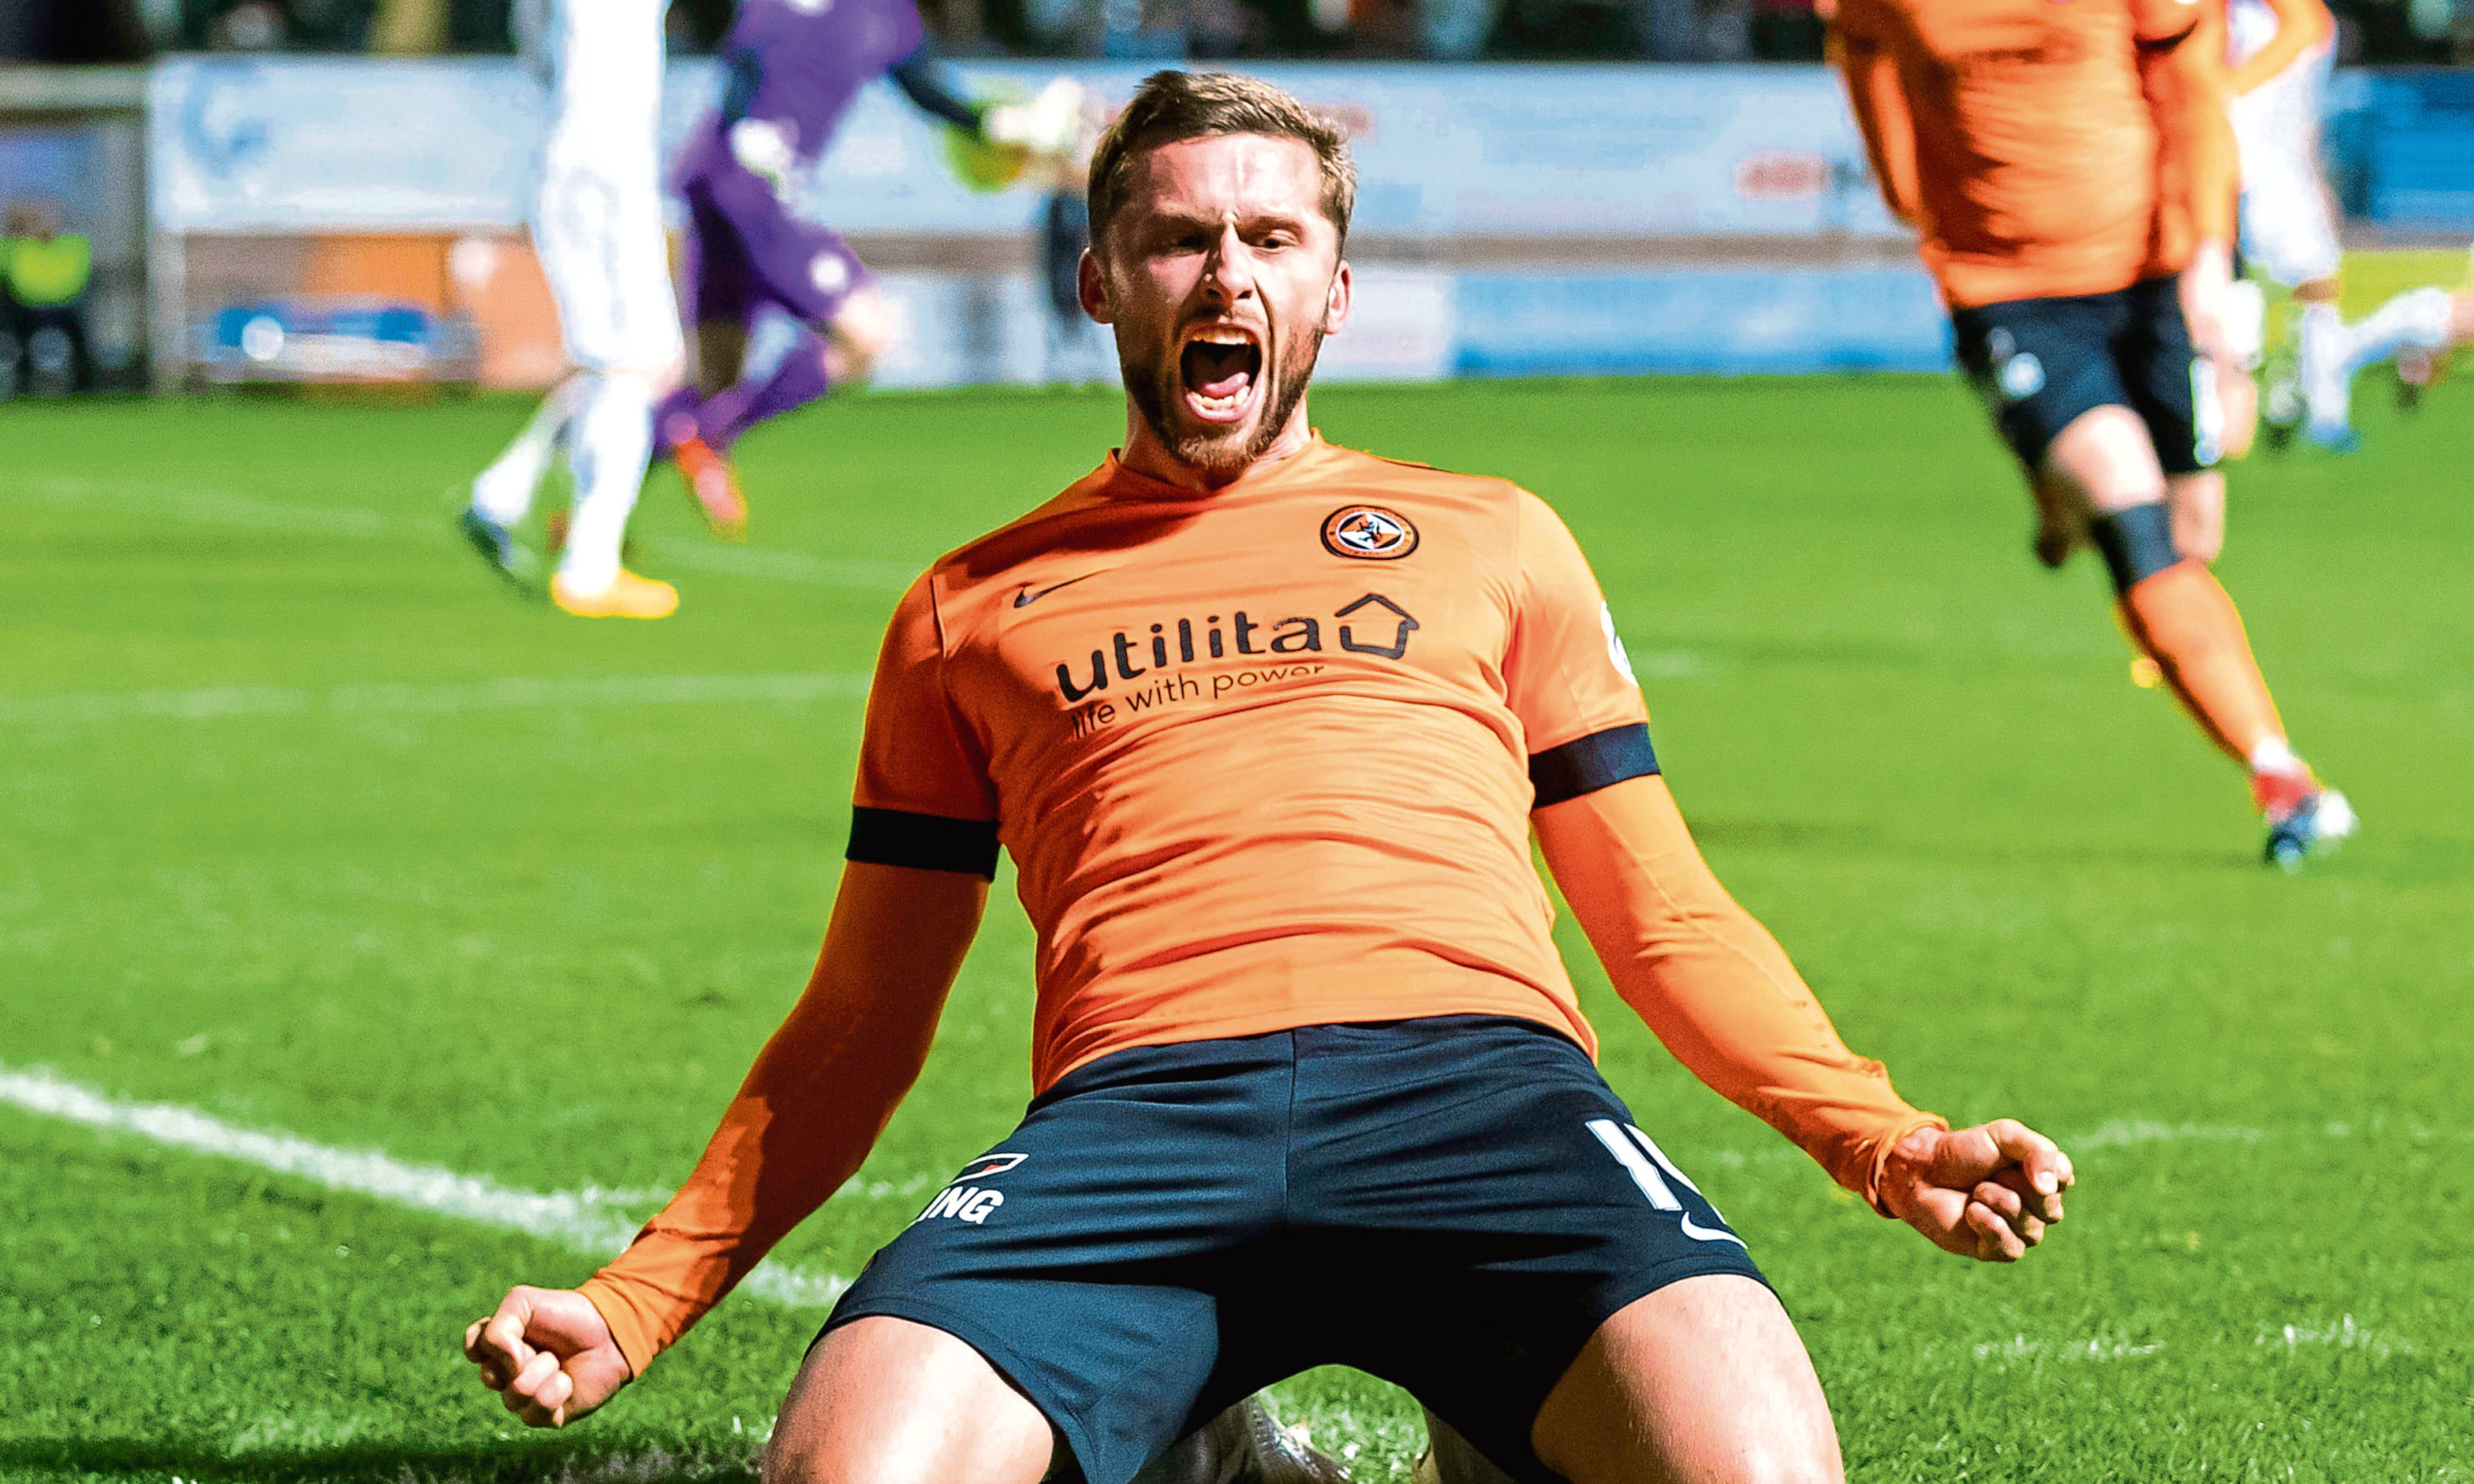 On-loan Slovakian striker Pavol Safranko has been a revelation for Dundee United this season with, not just his goals, but yards covered, too